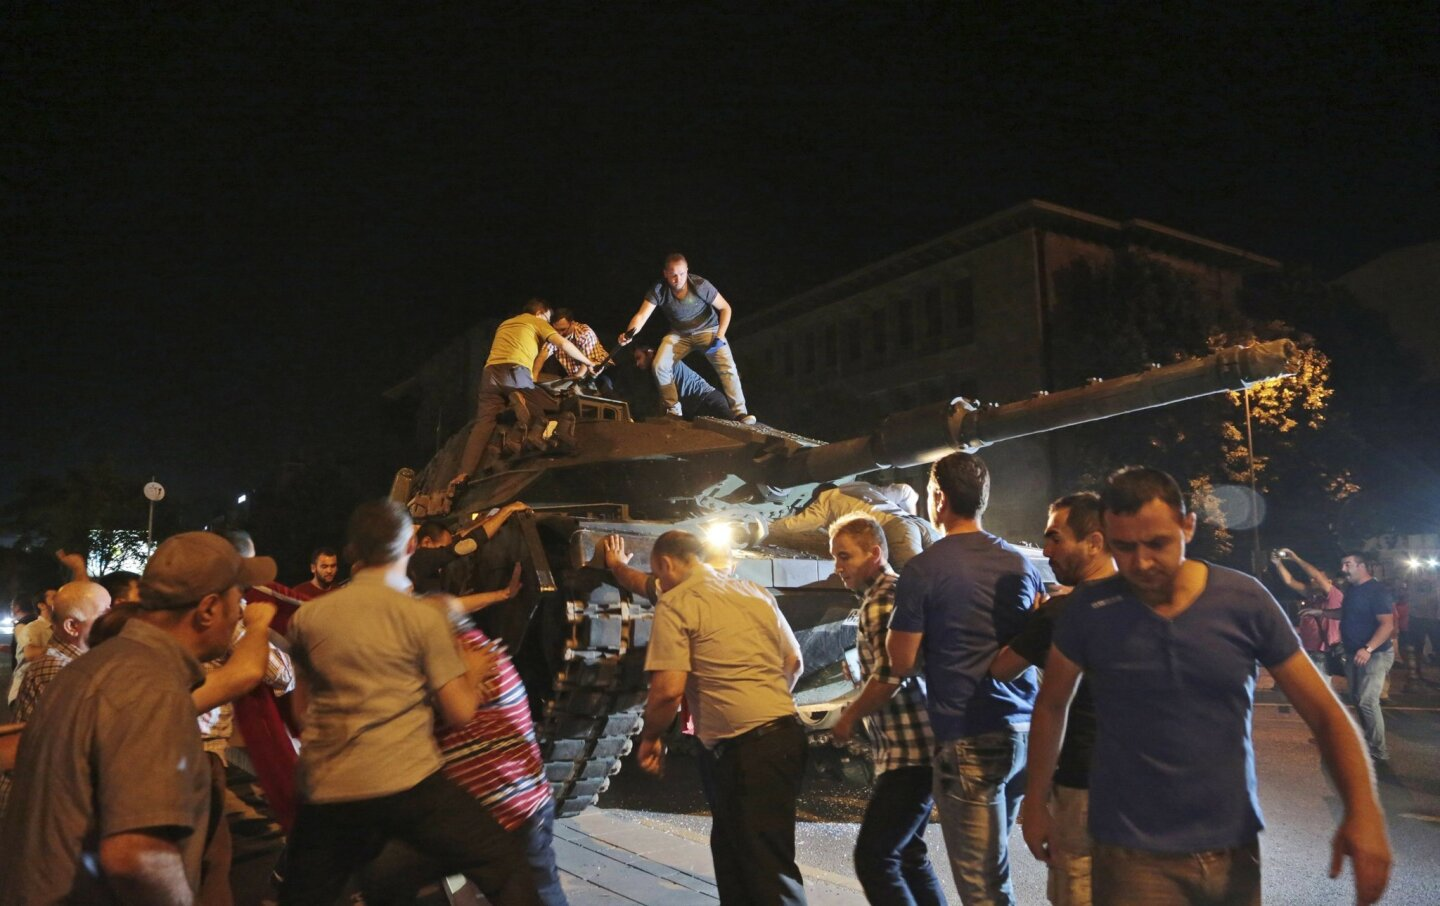 A tank moves into position as Turkish people attempt to stop them, in Ankara, Turkey, late Friday, July 15, 2016. Members of Turkey's armed forces said they had taken control of the country, but Turkish officials said the coup attempt had been repelled early Saturday morning in a night of violence,